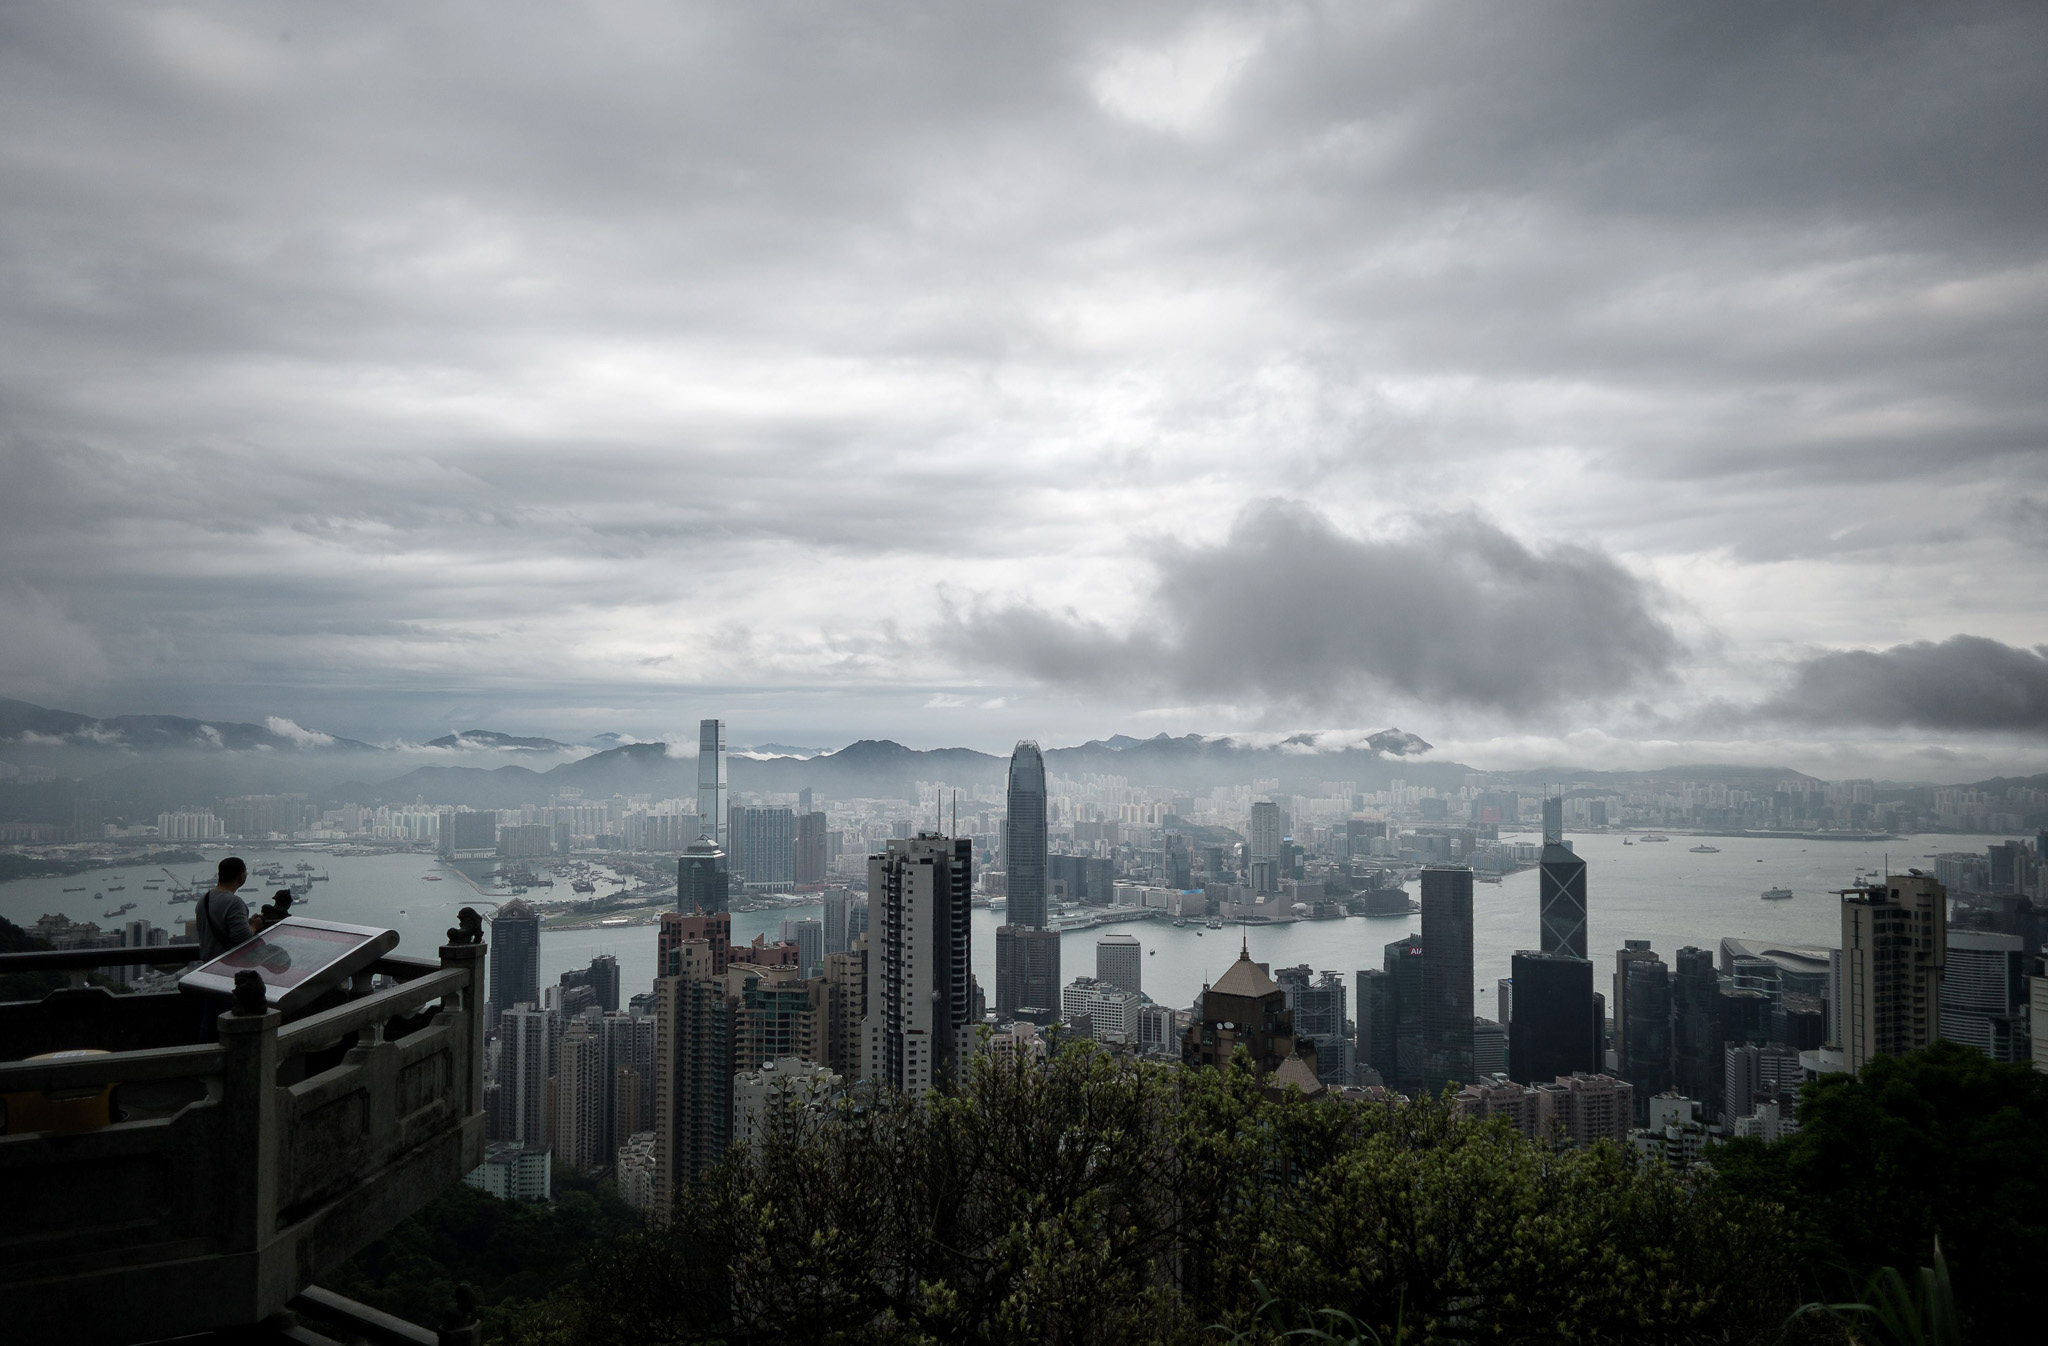 A man (L) looks at the city's skyline as...A man (L) looks at the city's skyline as a storm approaches in Hong Kong on April 2, 2014. Stormy weather is affecting the city due to a trough of low pressure on coastal areas of neighbouring Guangdong province in southern China. AFP PHOTO / Philippe LopezPHILIPPE LOPEZ/AFP/Getty Images